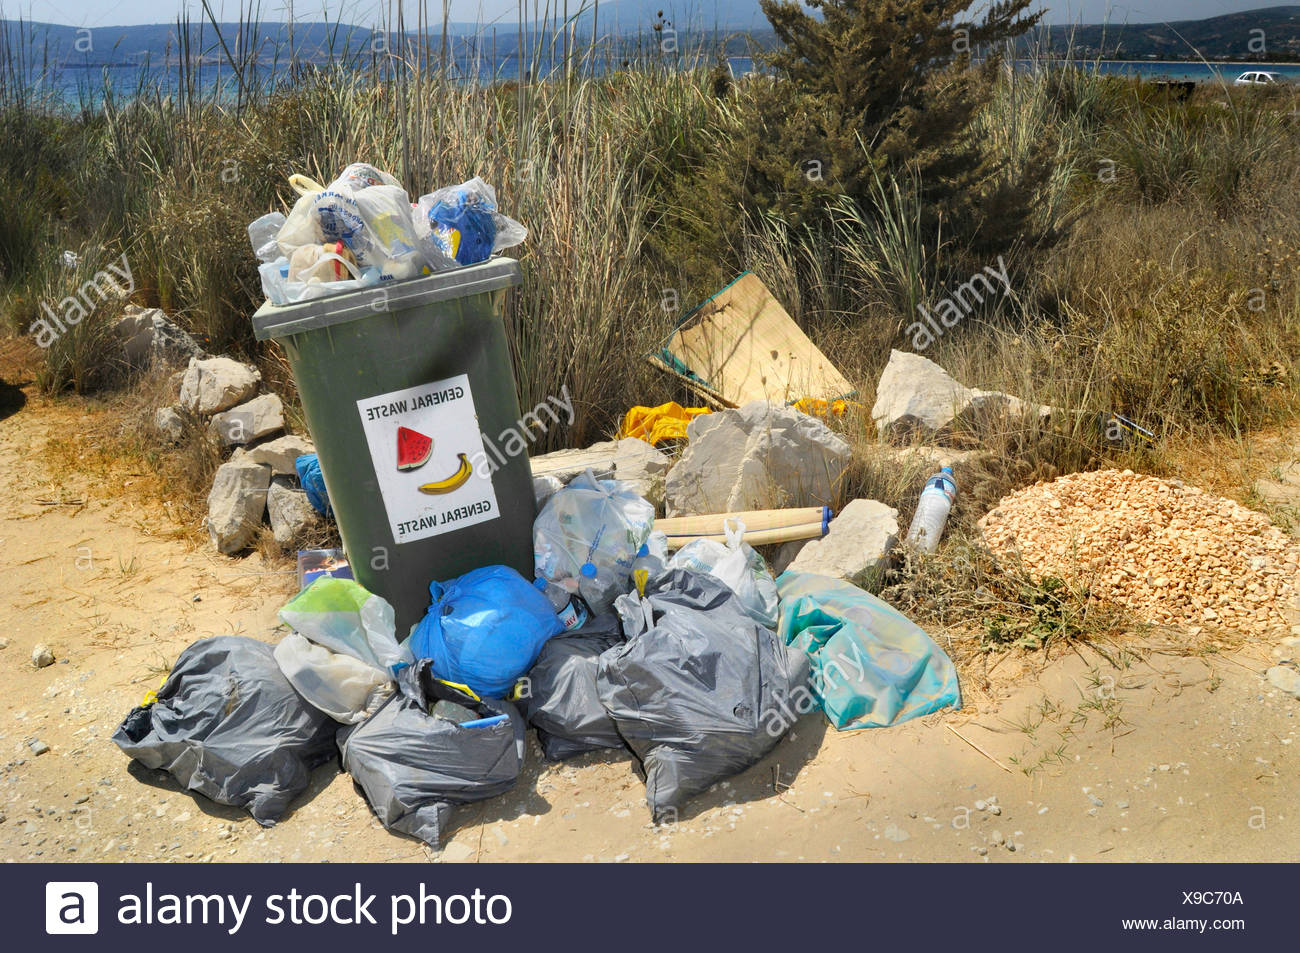 overfilled dustbin in a Natura 2000 nature reserve in Greece, Greece, Peloponnes, Messinien, Pylos - Stock Image